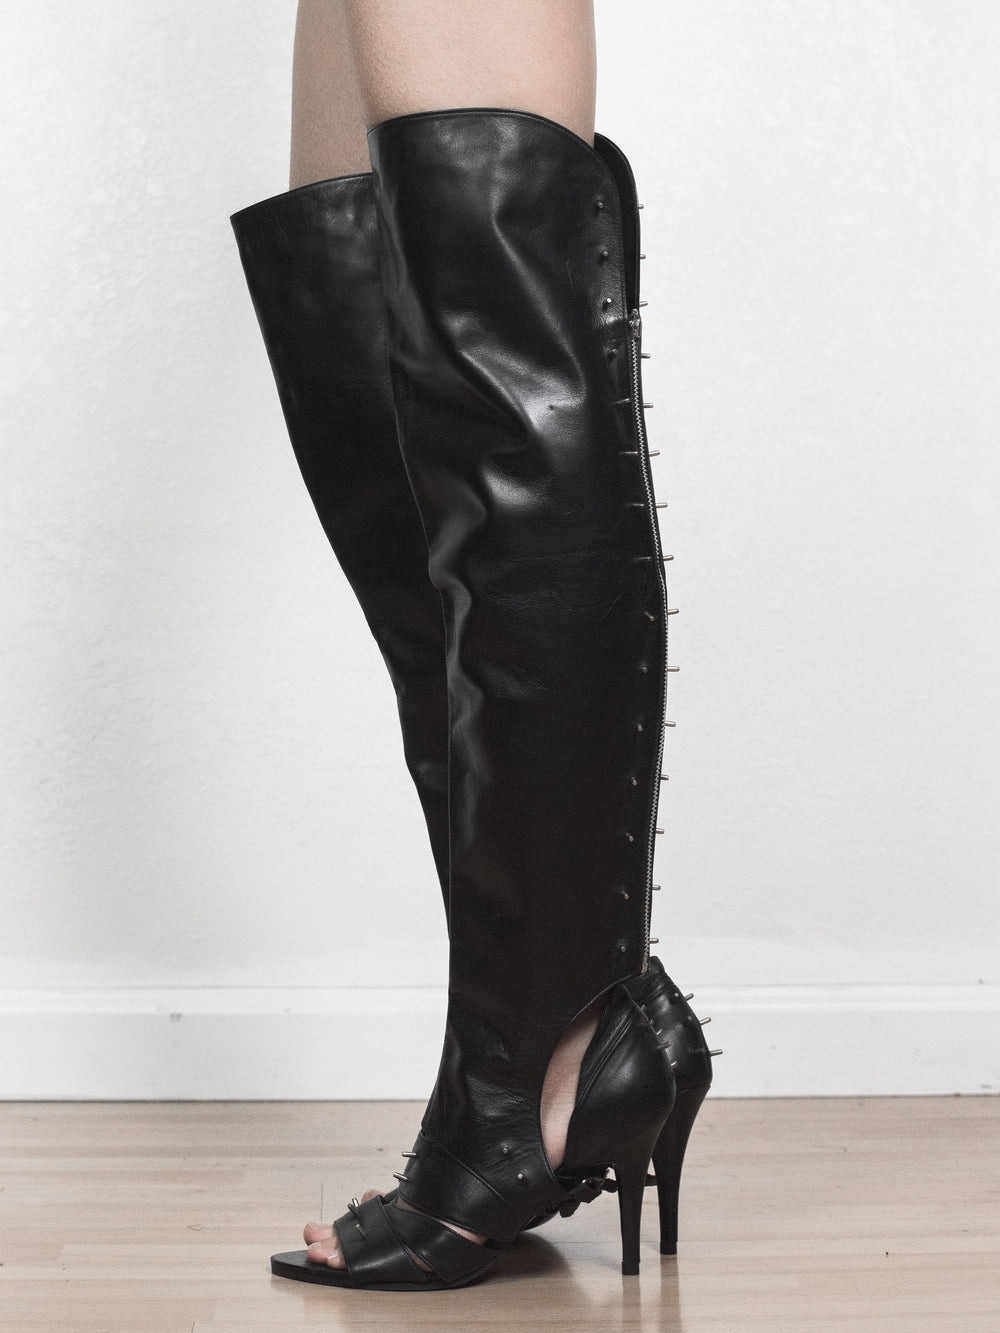 Undercover SS06 Heels with Chaps